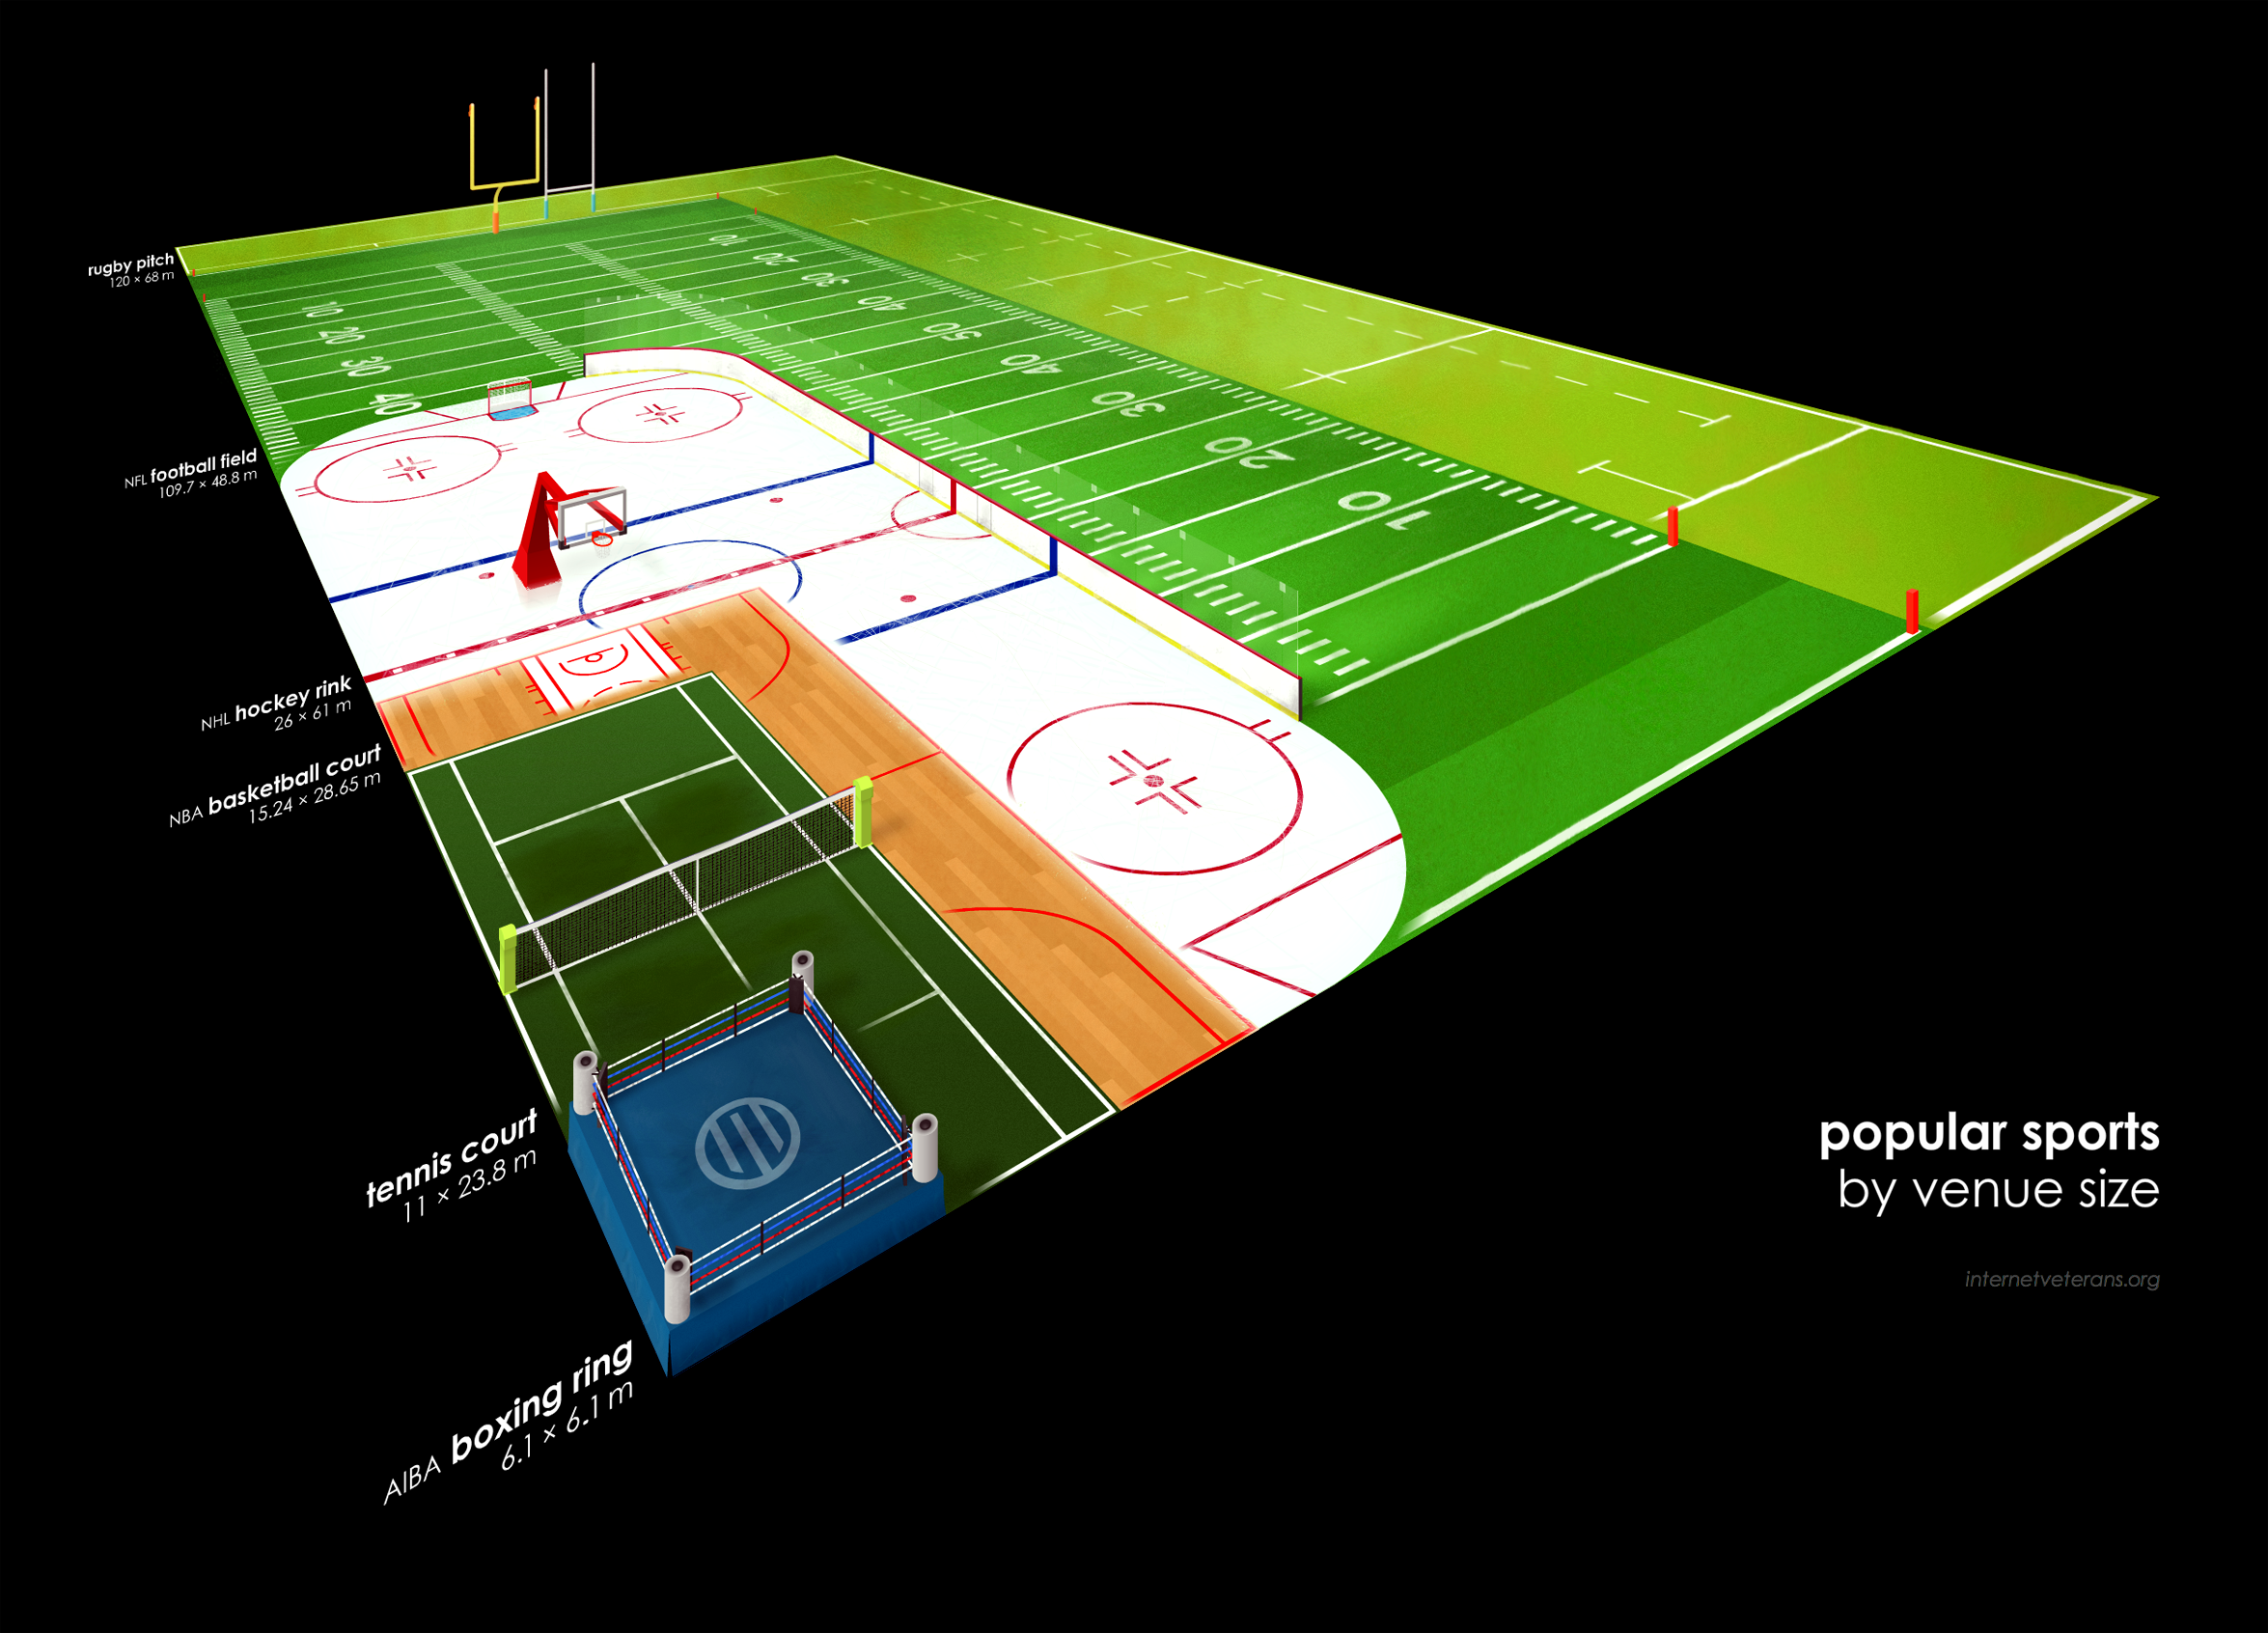 Popular sports by venue size by bonusbox on deviantart for Sport court size